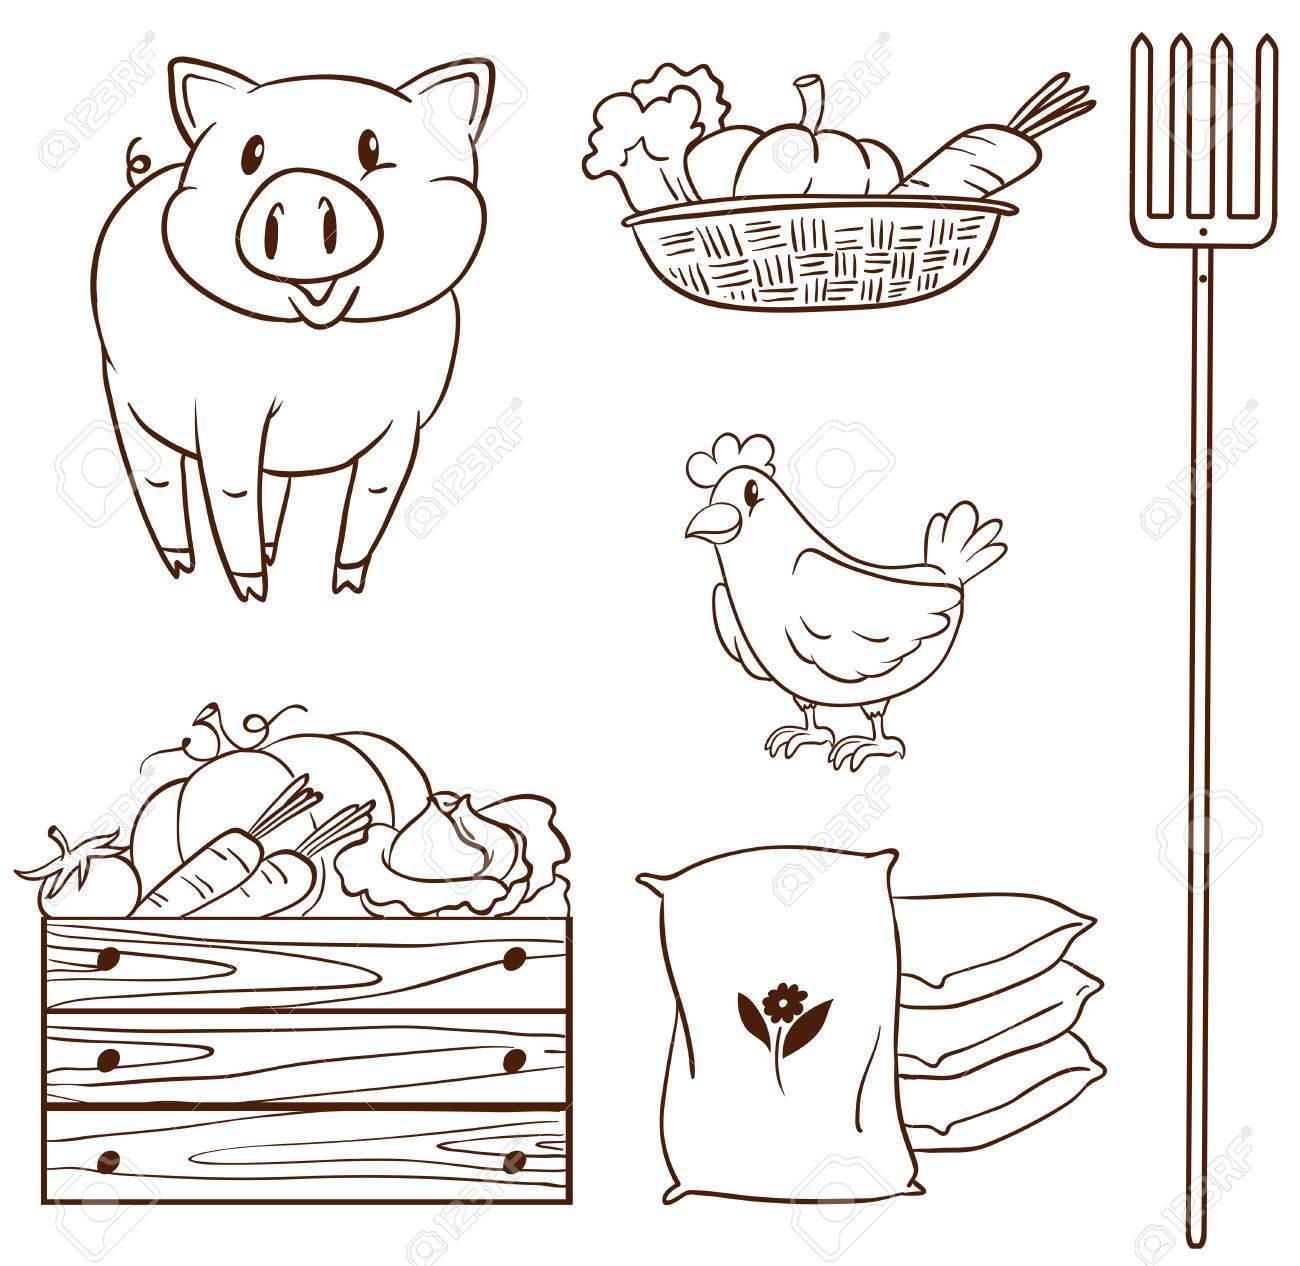 Illustration Of A Simple Sketch Of The Farm Animals And The ... for Simple Farm Sketch  53kxo